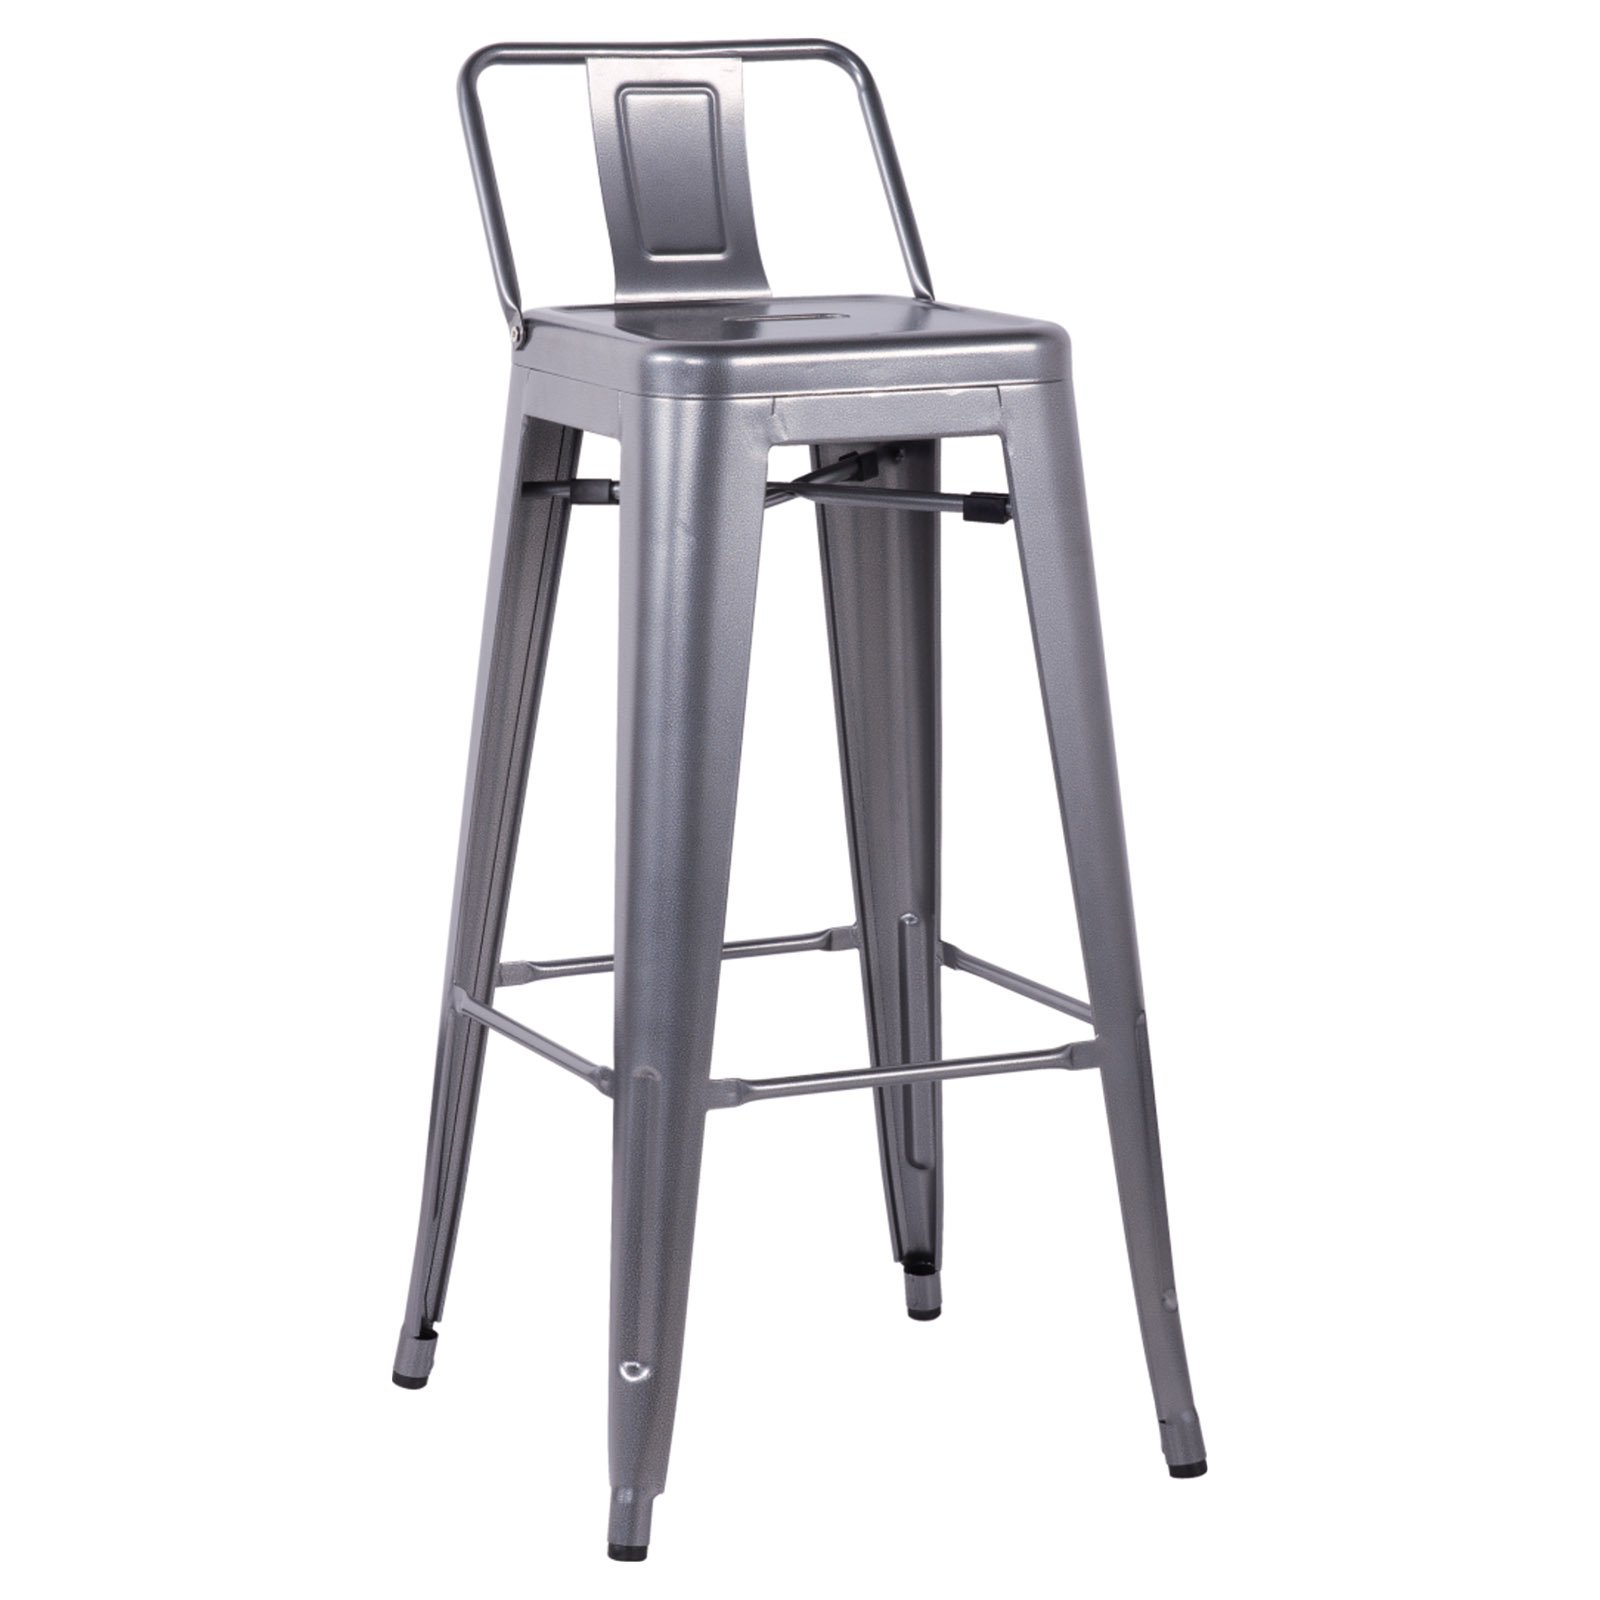 Chintaly Sorrento 30 In Galvanized Steel Bar Stools Set